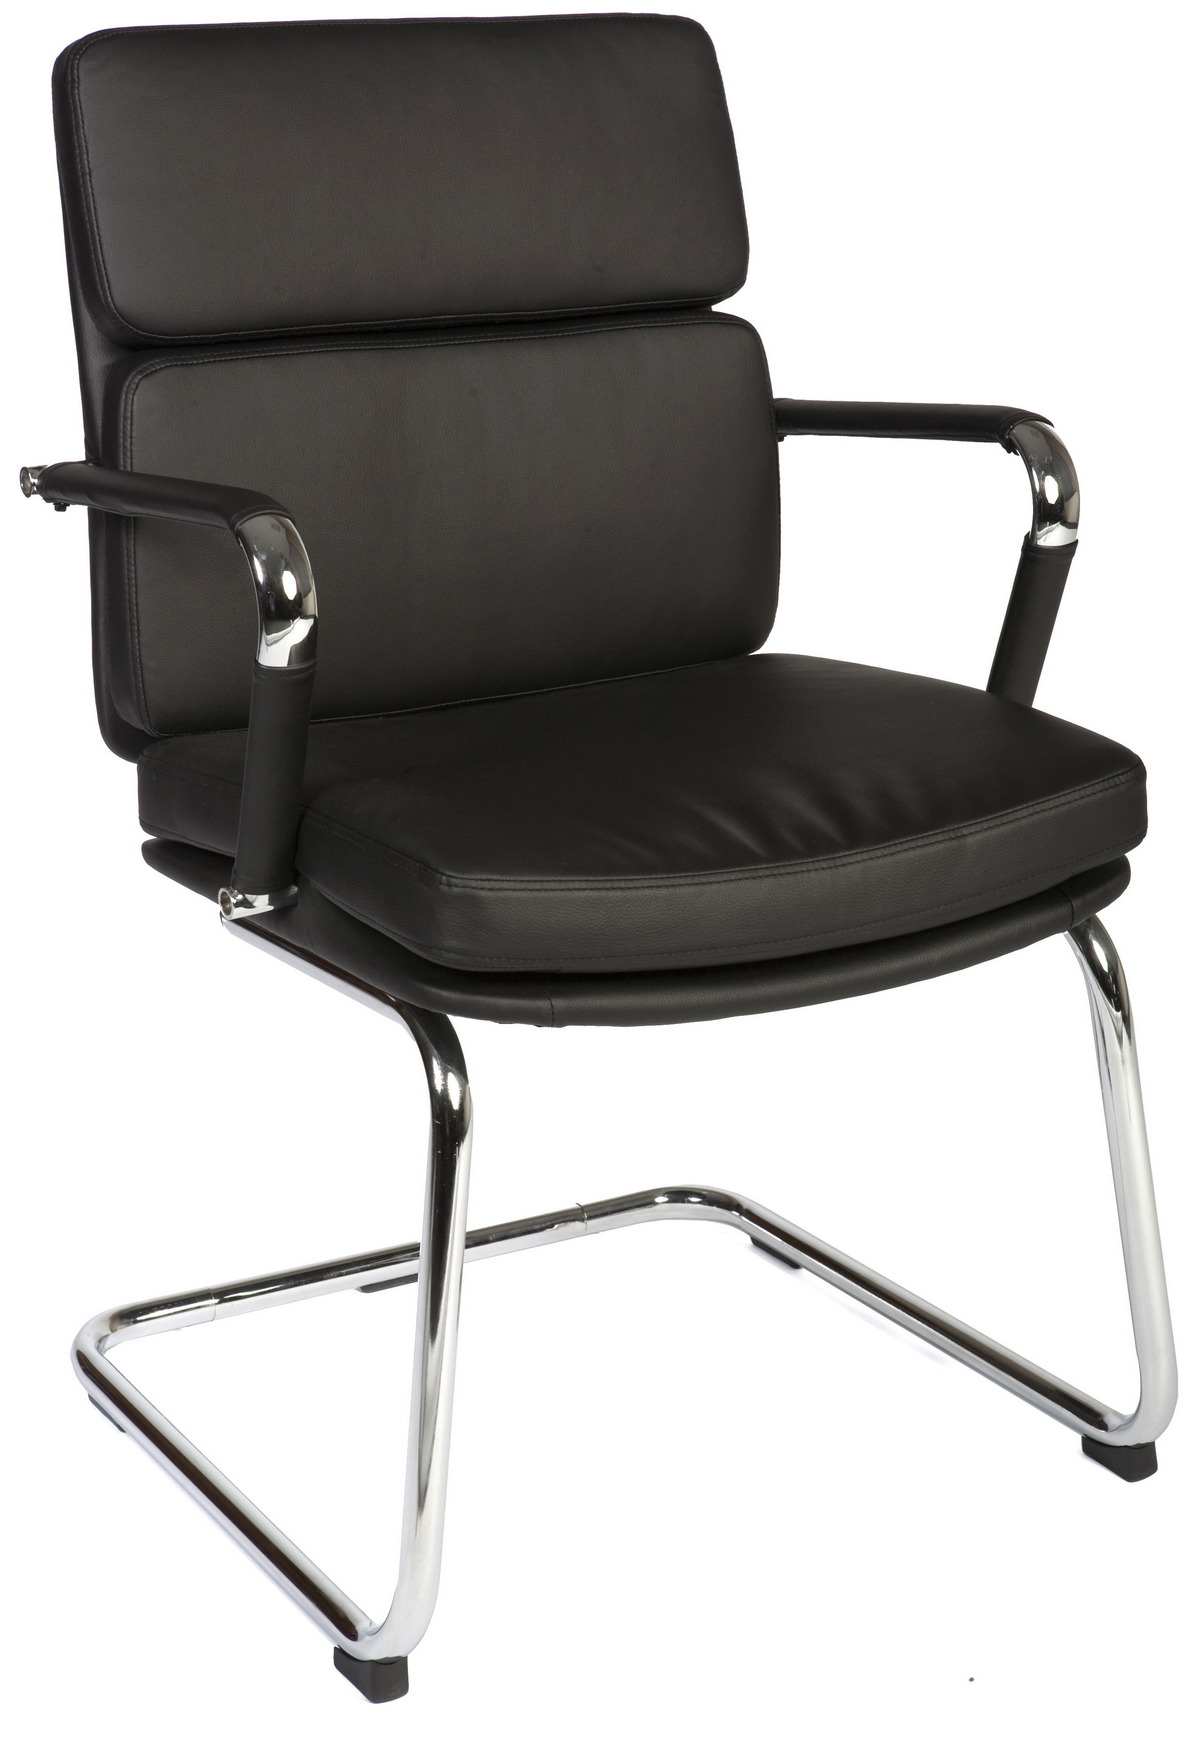 Budget Eames style padded faux leather cantilever chair white